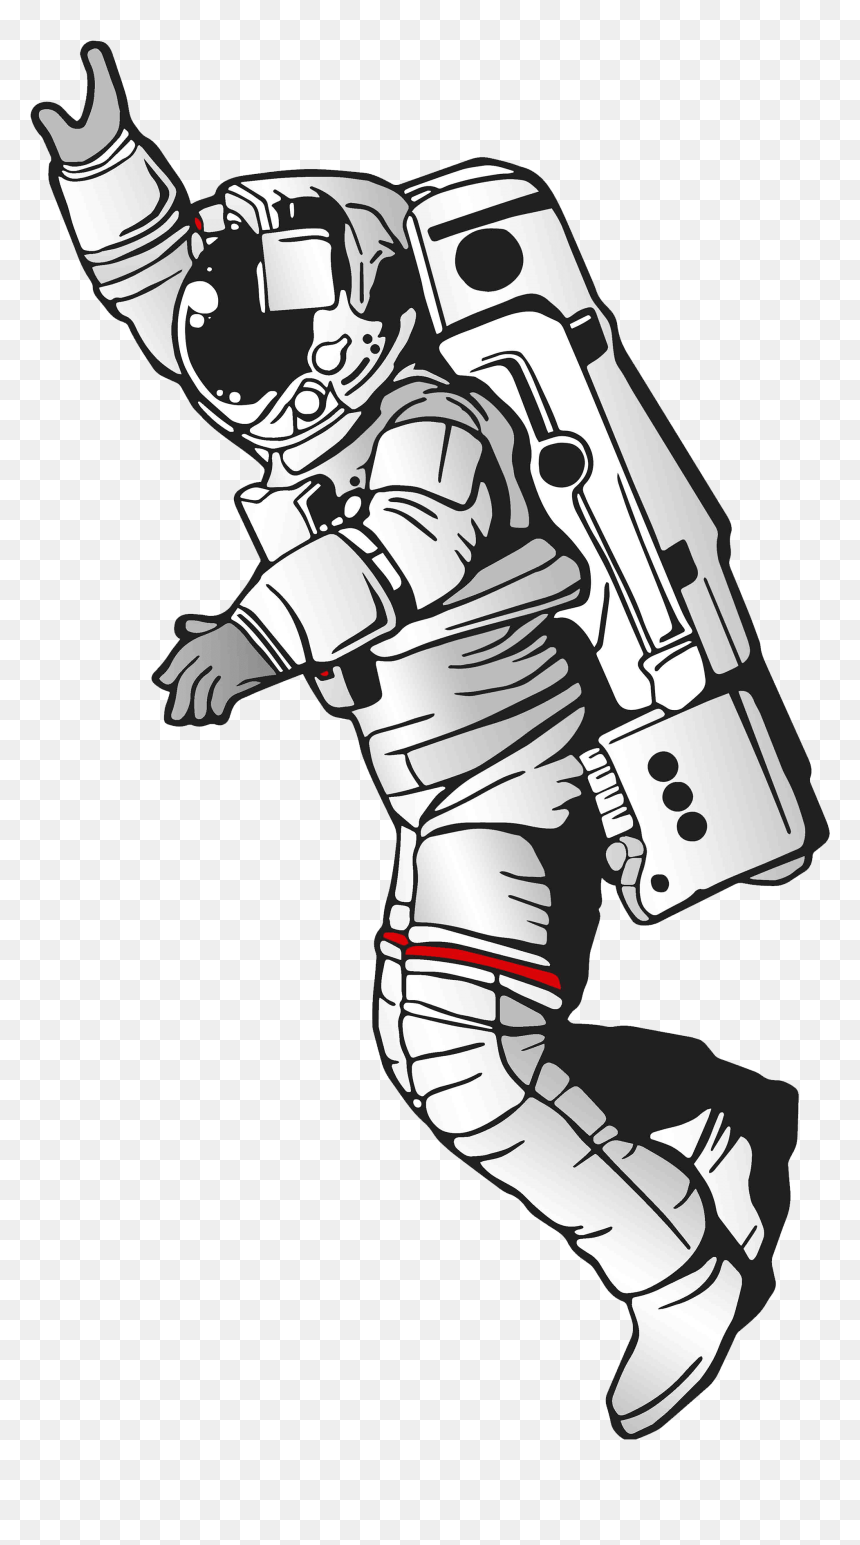 Outerspace Drawing Astronaut Frames Illustrations Hd - Transparent Cartoon Astronaut Png, Png Download